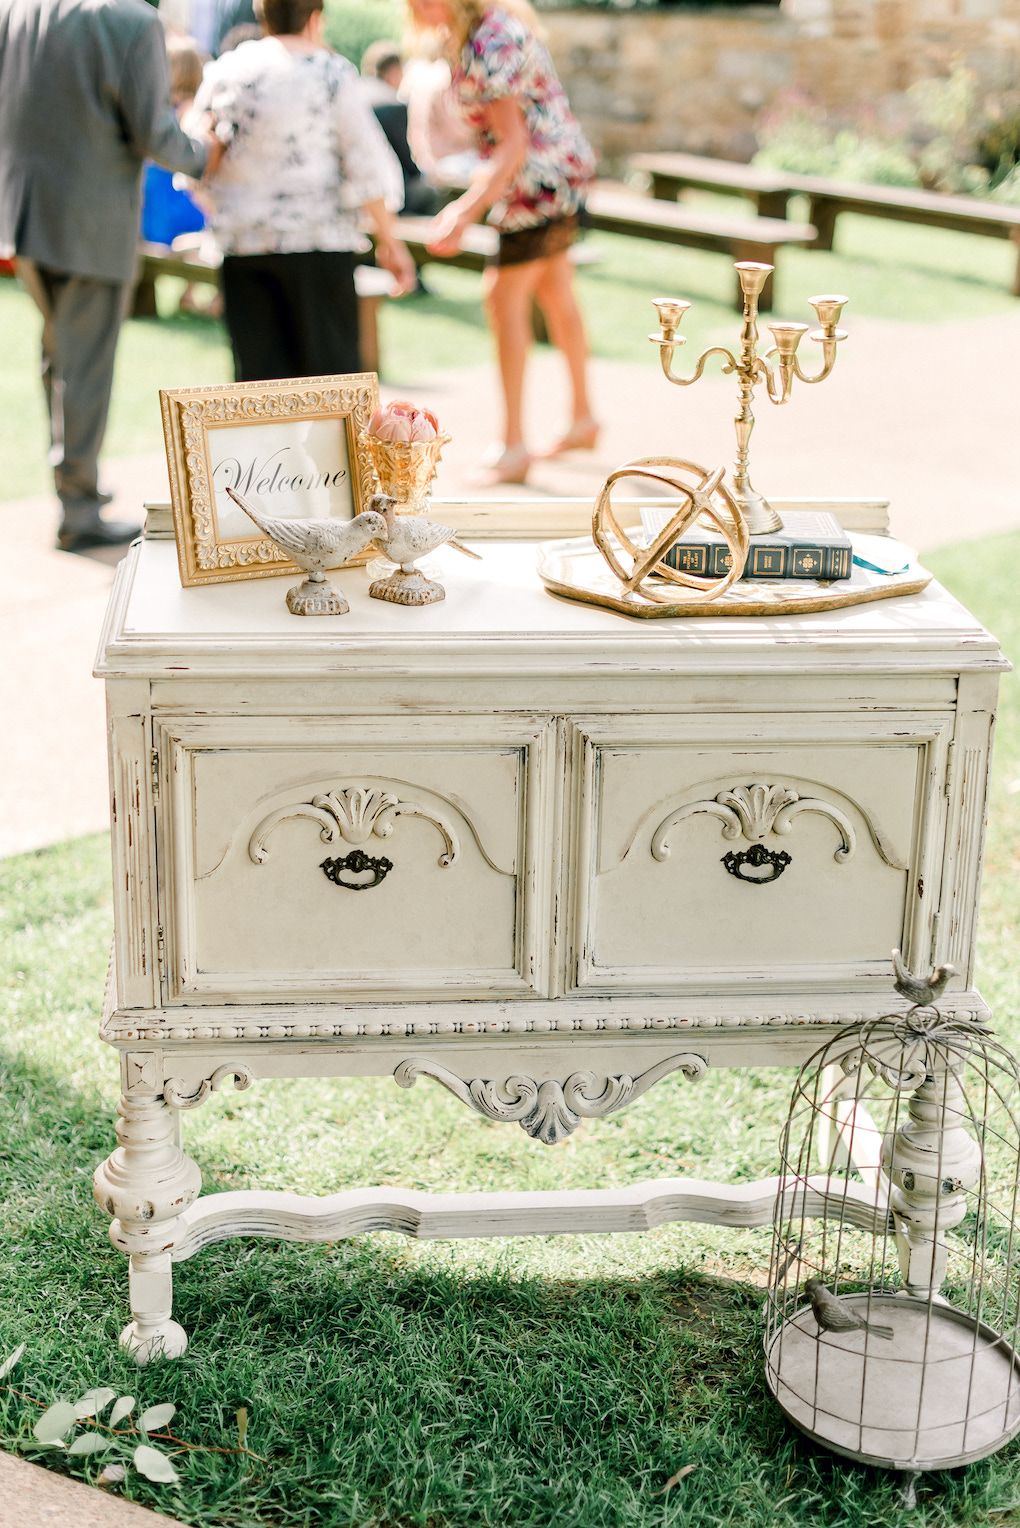 Vintage Welcome Table for Wedding Ceremony: Romantic Delicate Summer Wedding in Pittsburgh planned by Exhale Events. See more at exhale-events.com!